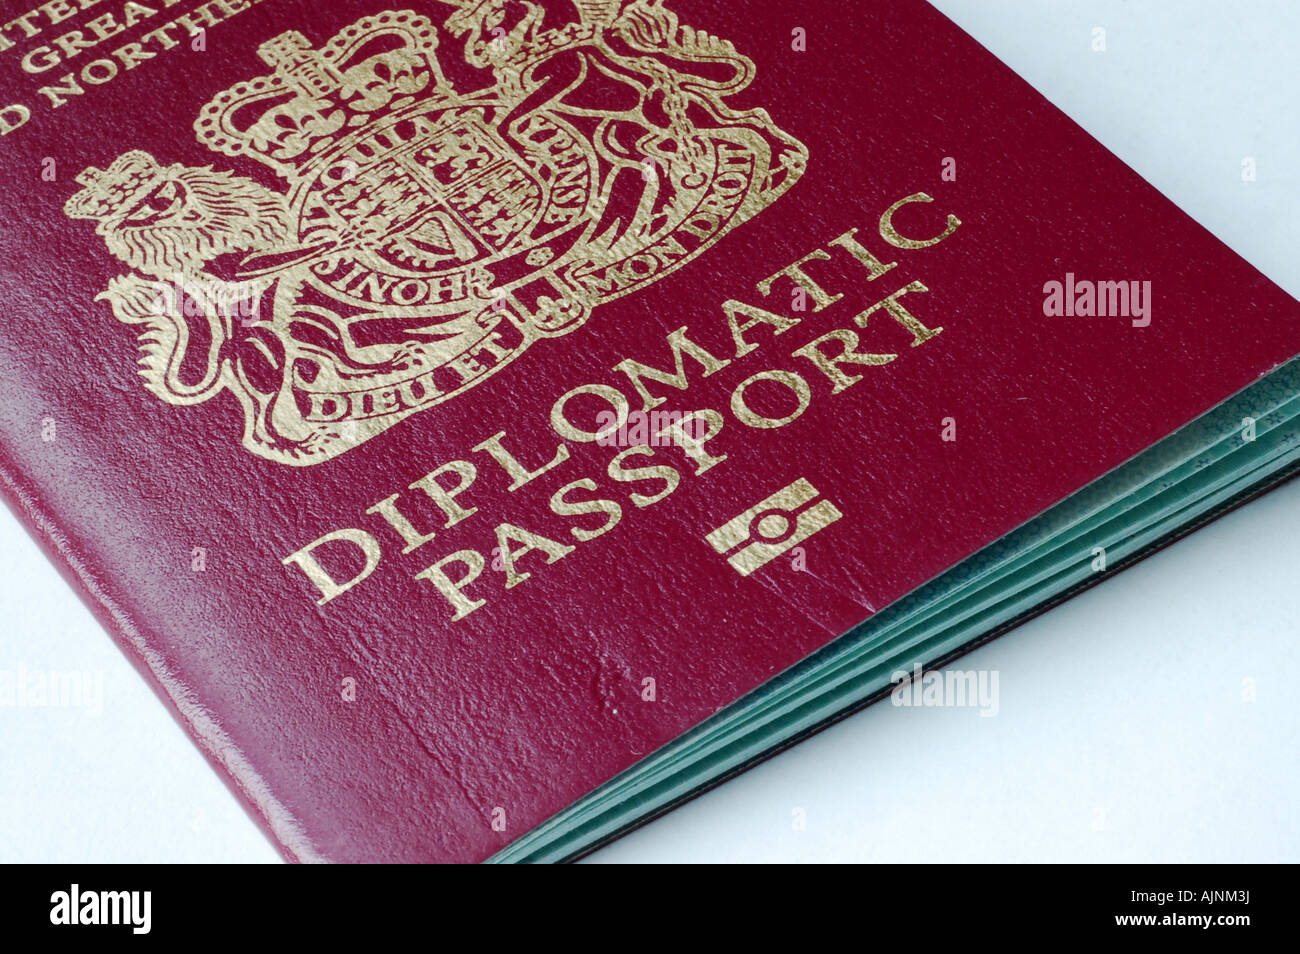 Diplomatic Passport Stock Photos & Diplomatic Passport Stock Visa  Requirements How To Apply For A Diplomatic How To Get